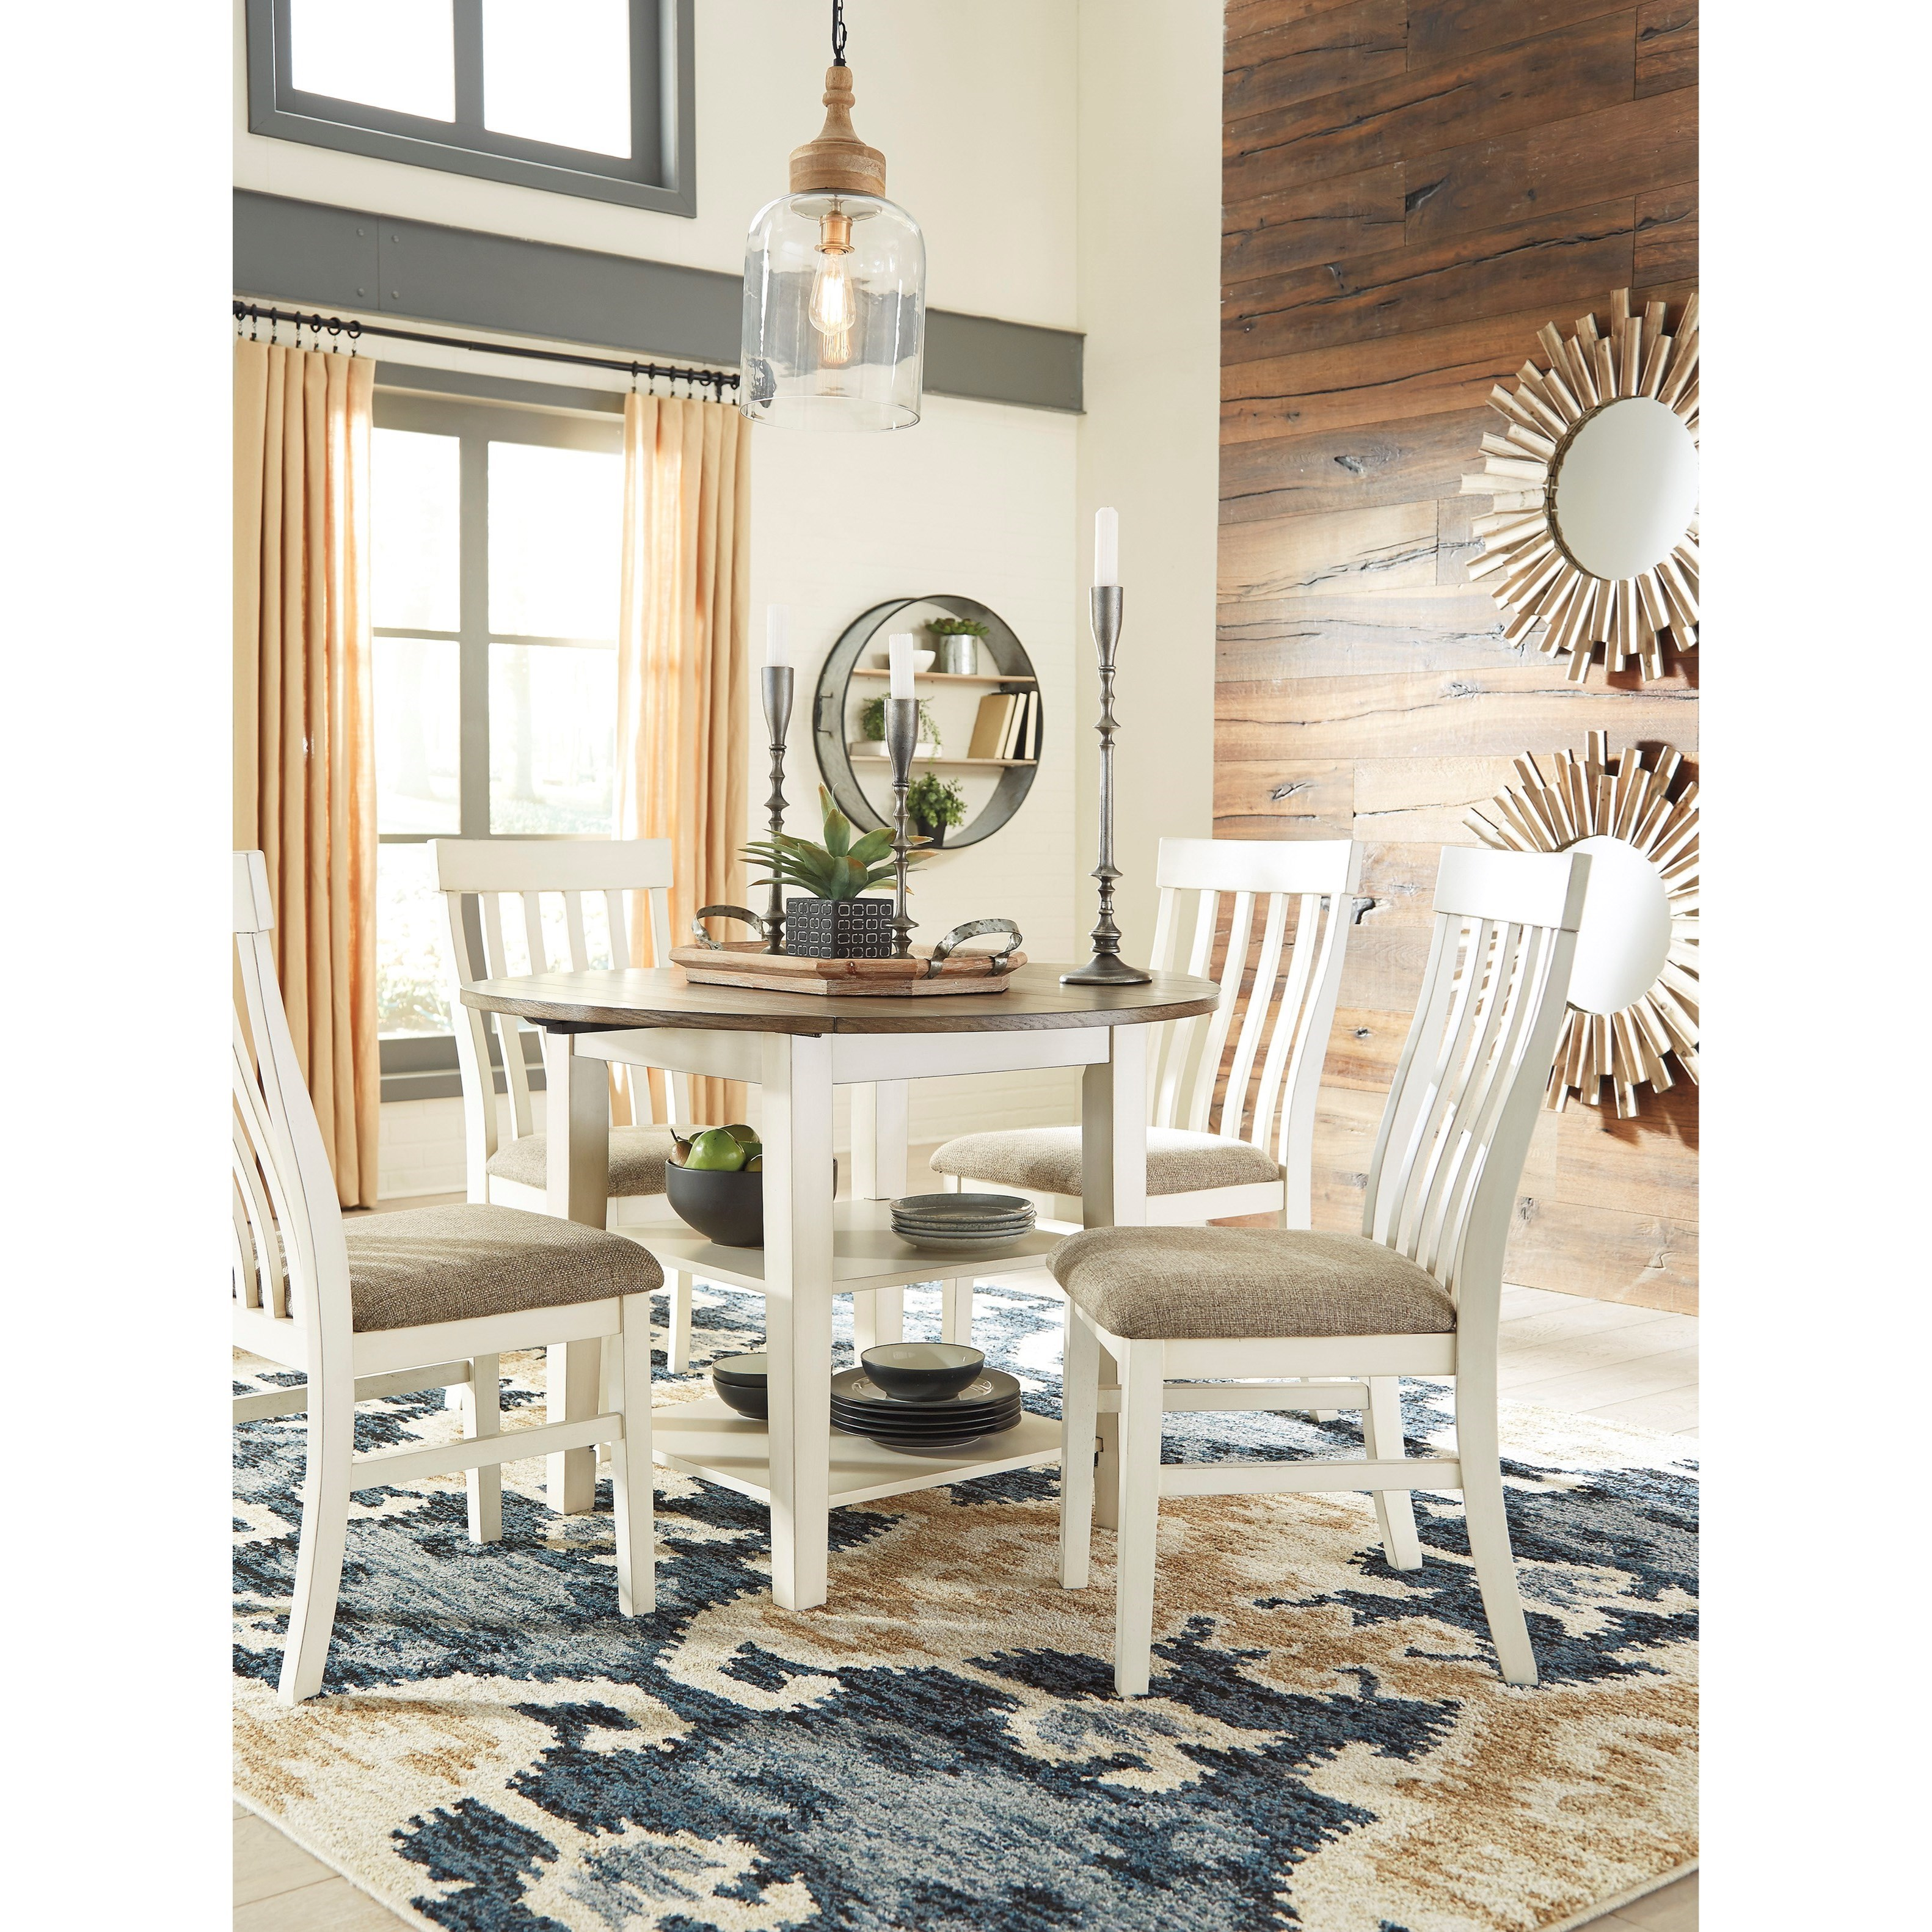 Dining Room Table Leaves: Bardilyn Two-Tone Round Dining Room Drop Leaf Table With